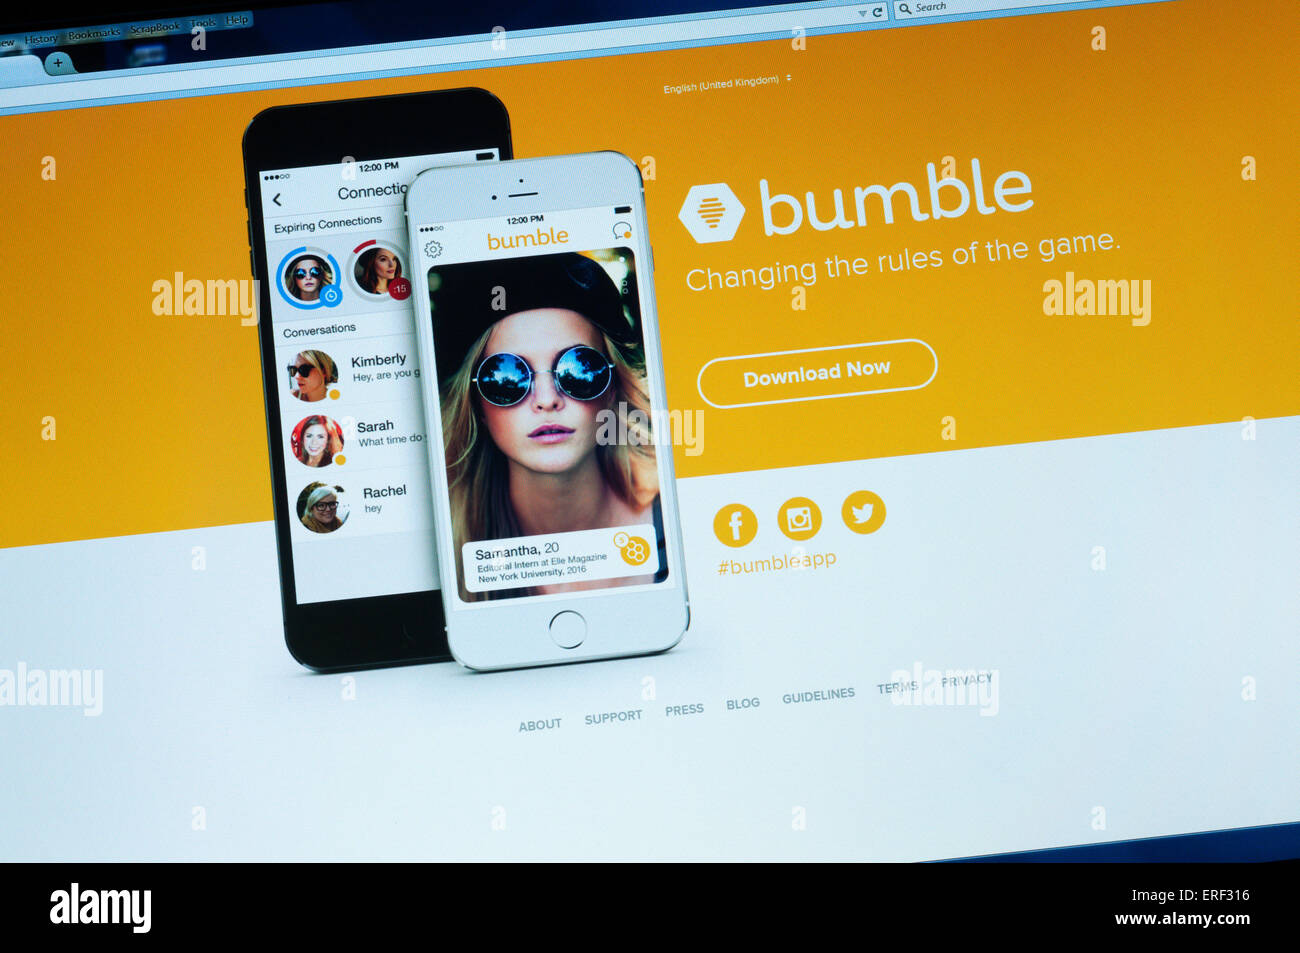 Bumble Dating App Royaume-Uni